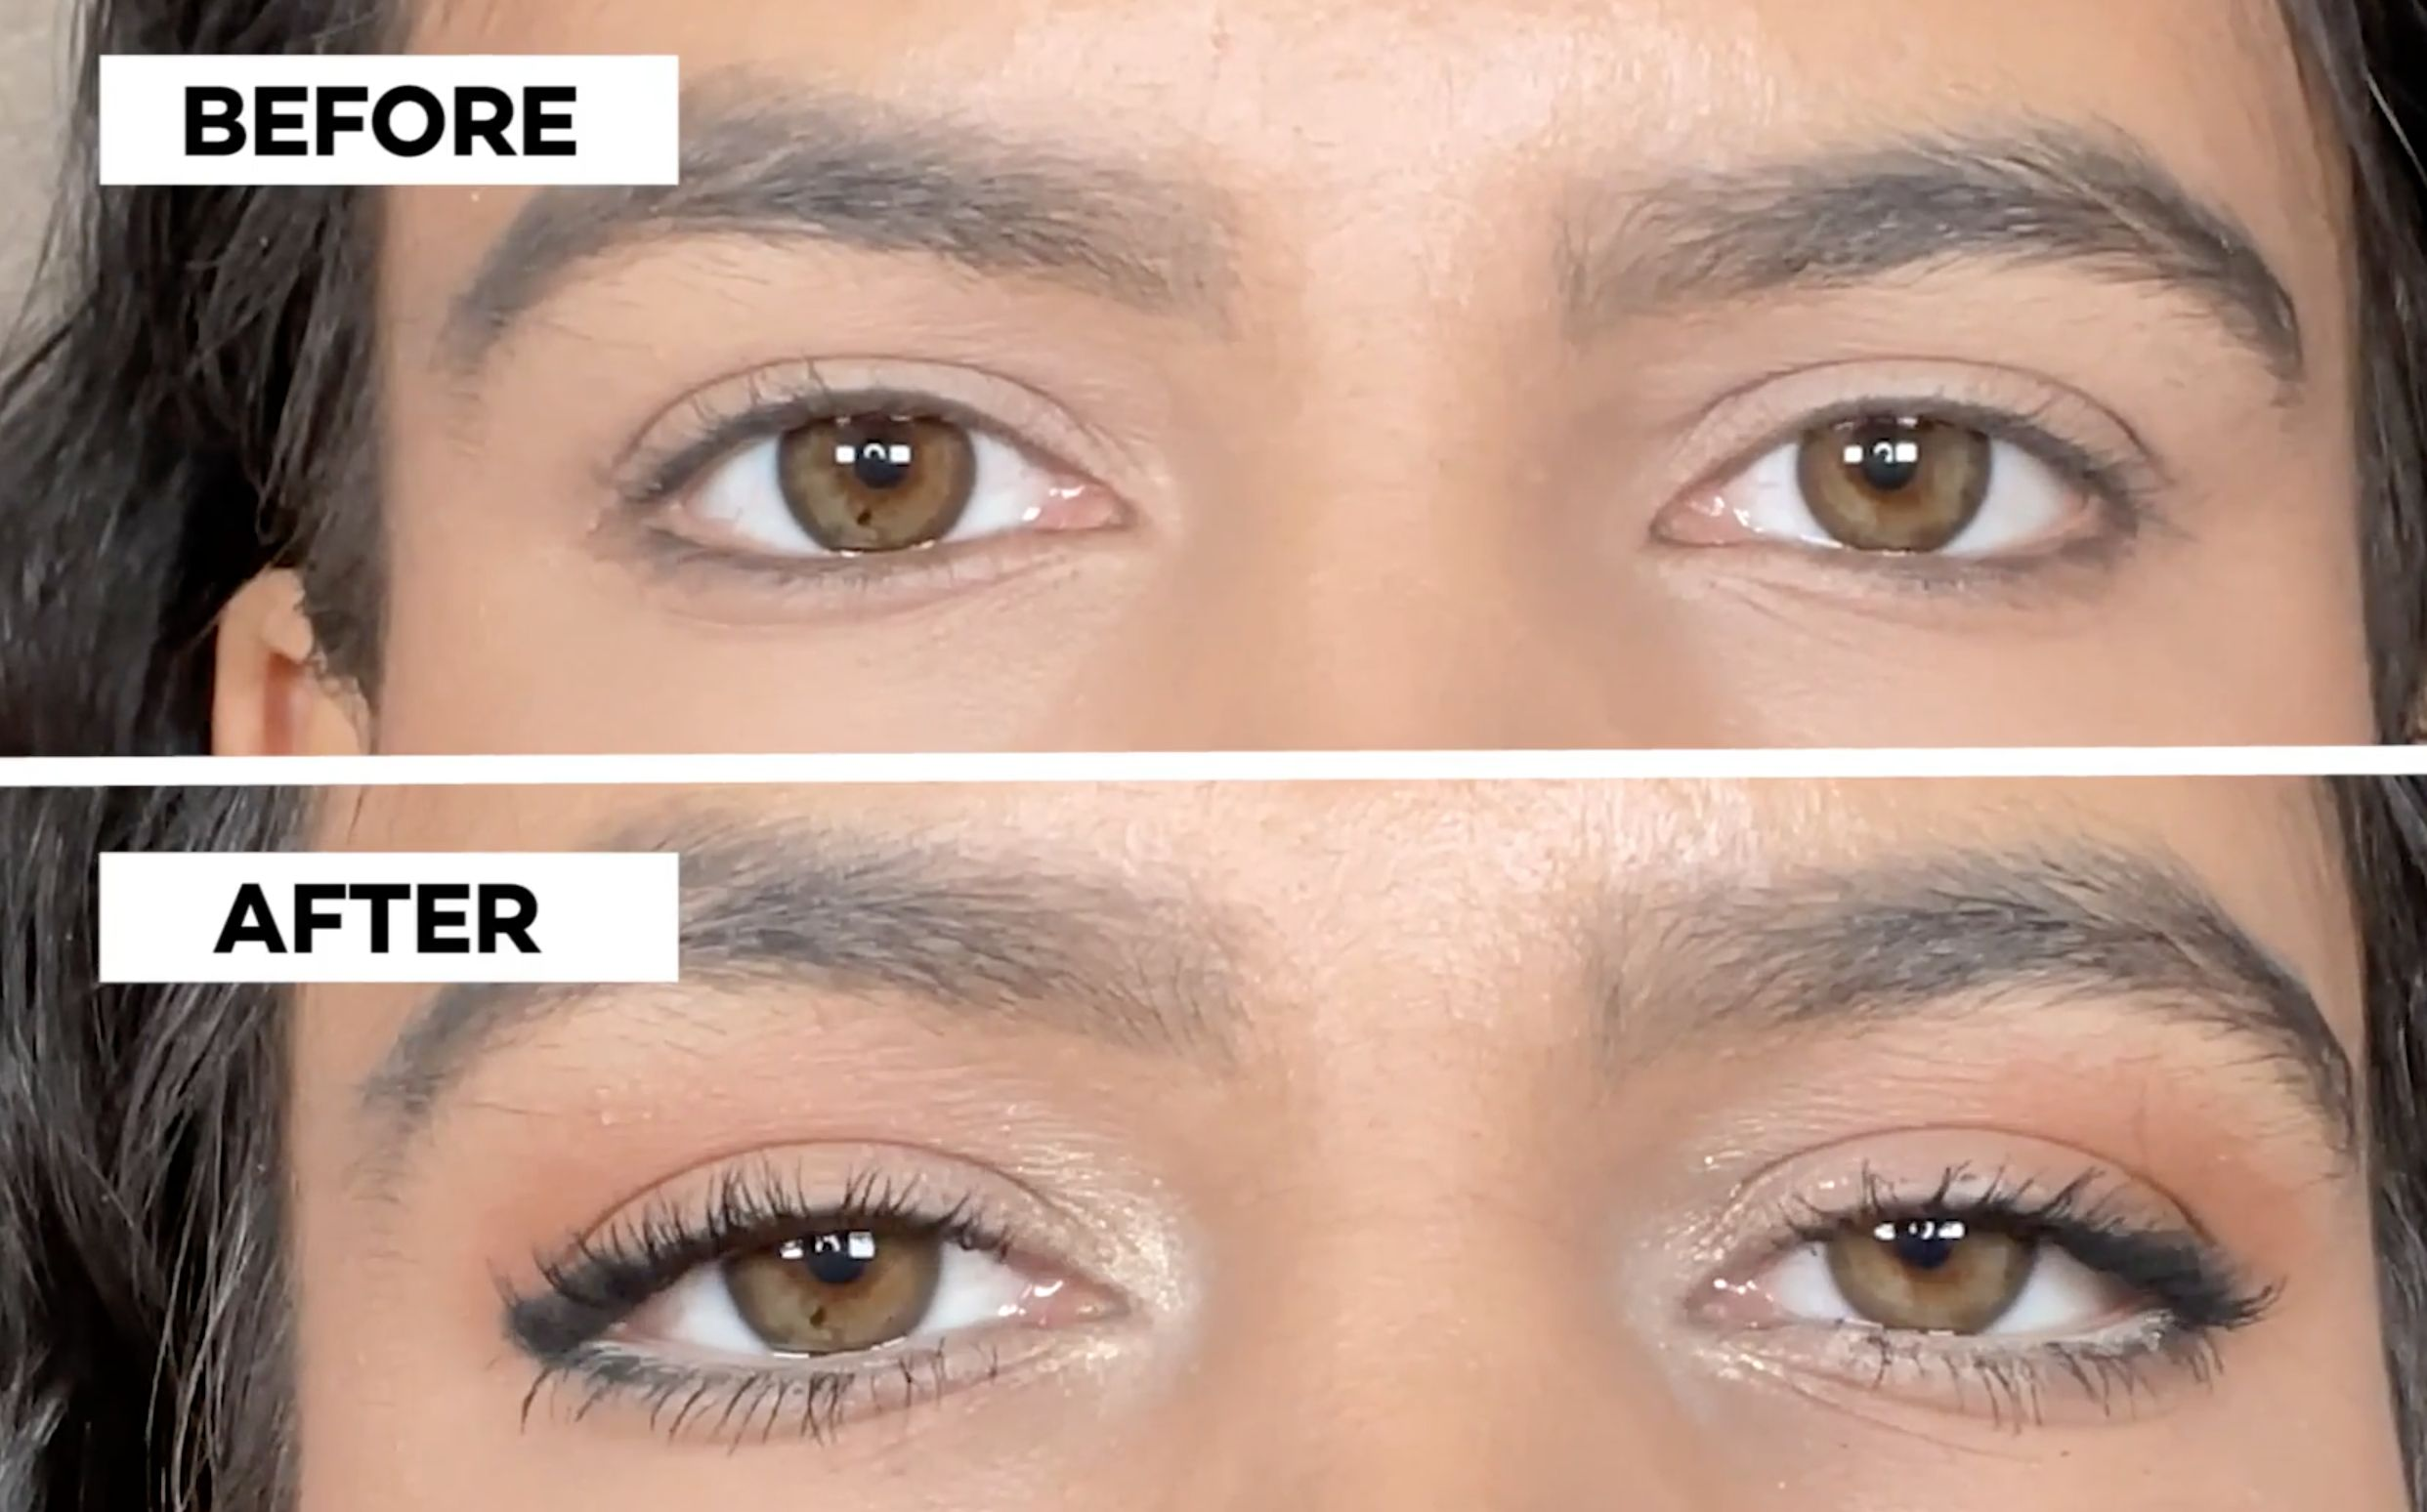 These makeup hacks instantly revive tired eyes: 'Fake a good night's sleep'